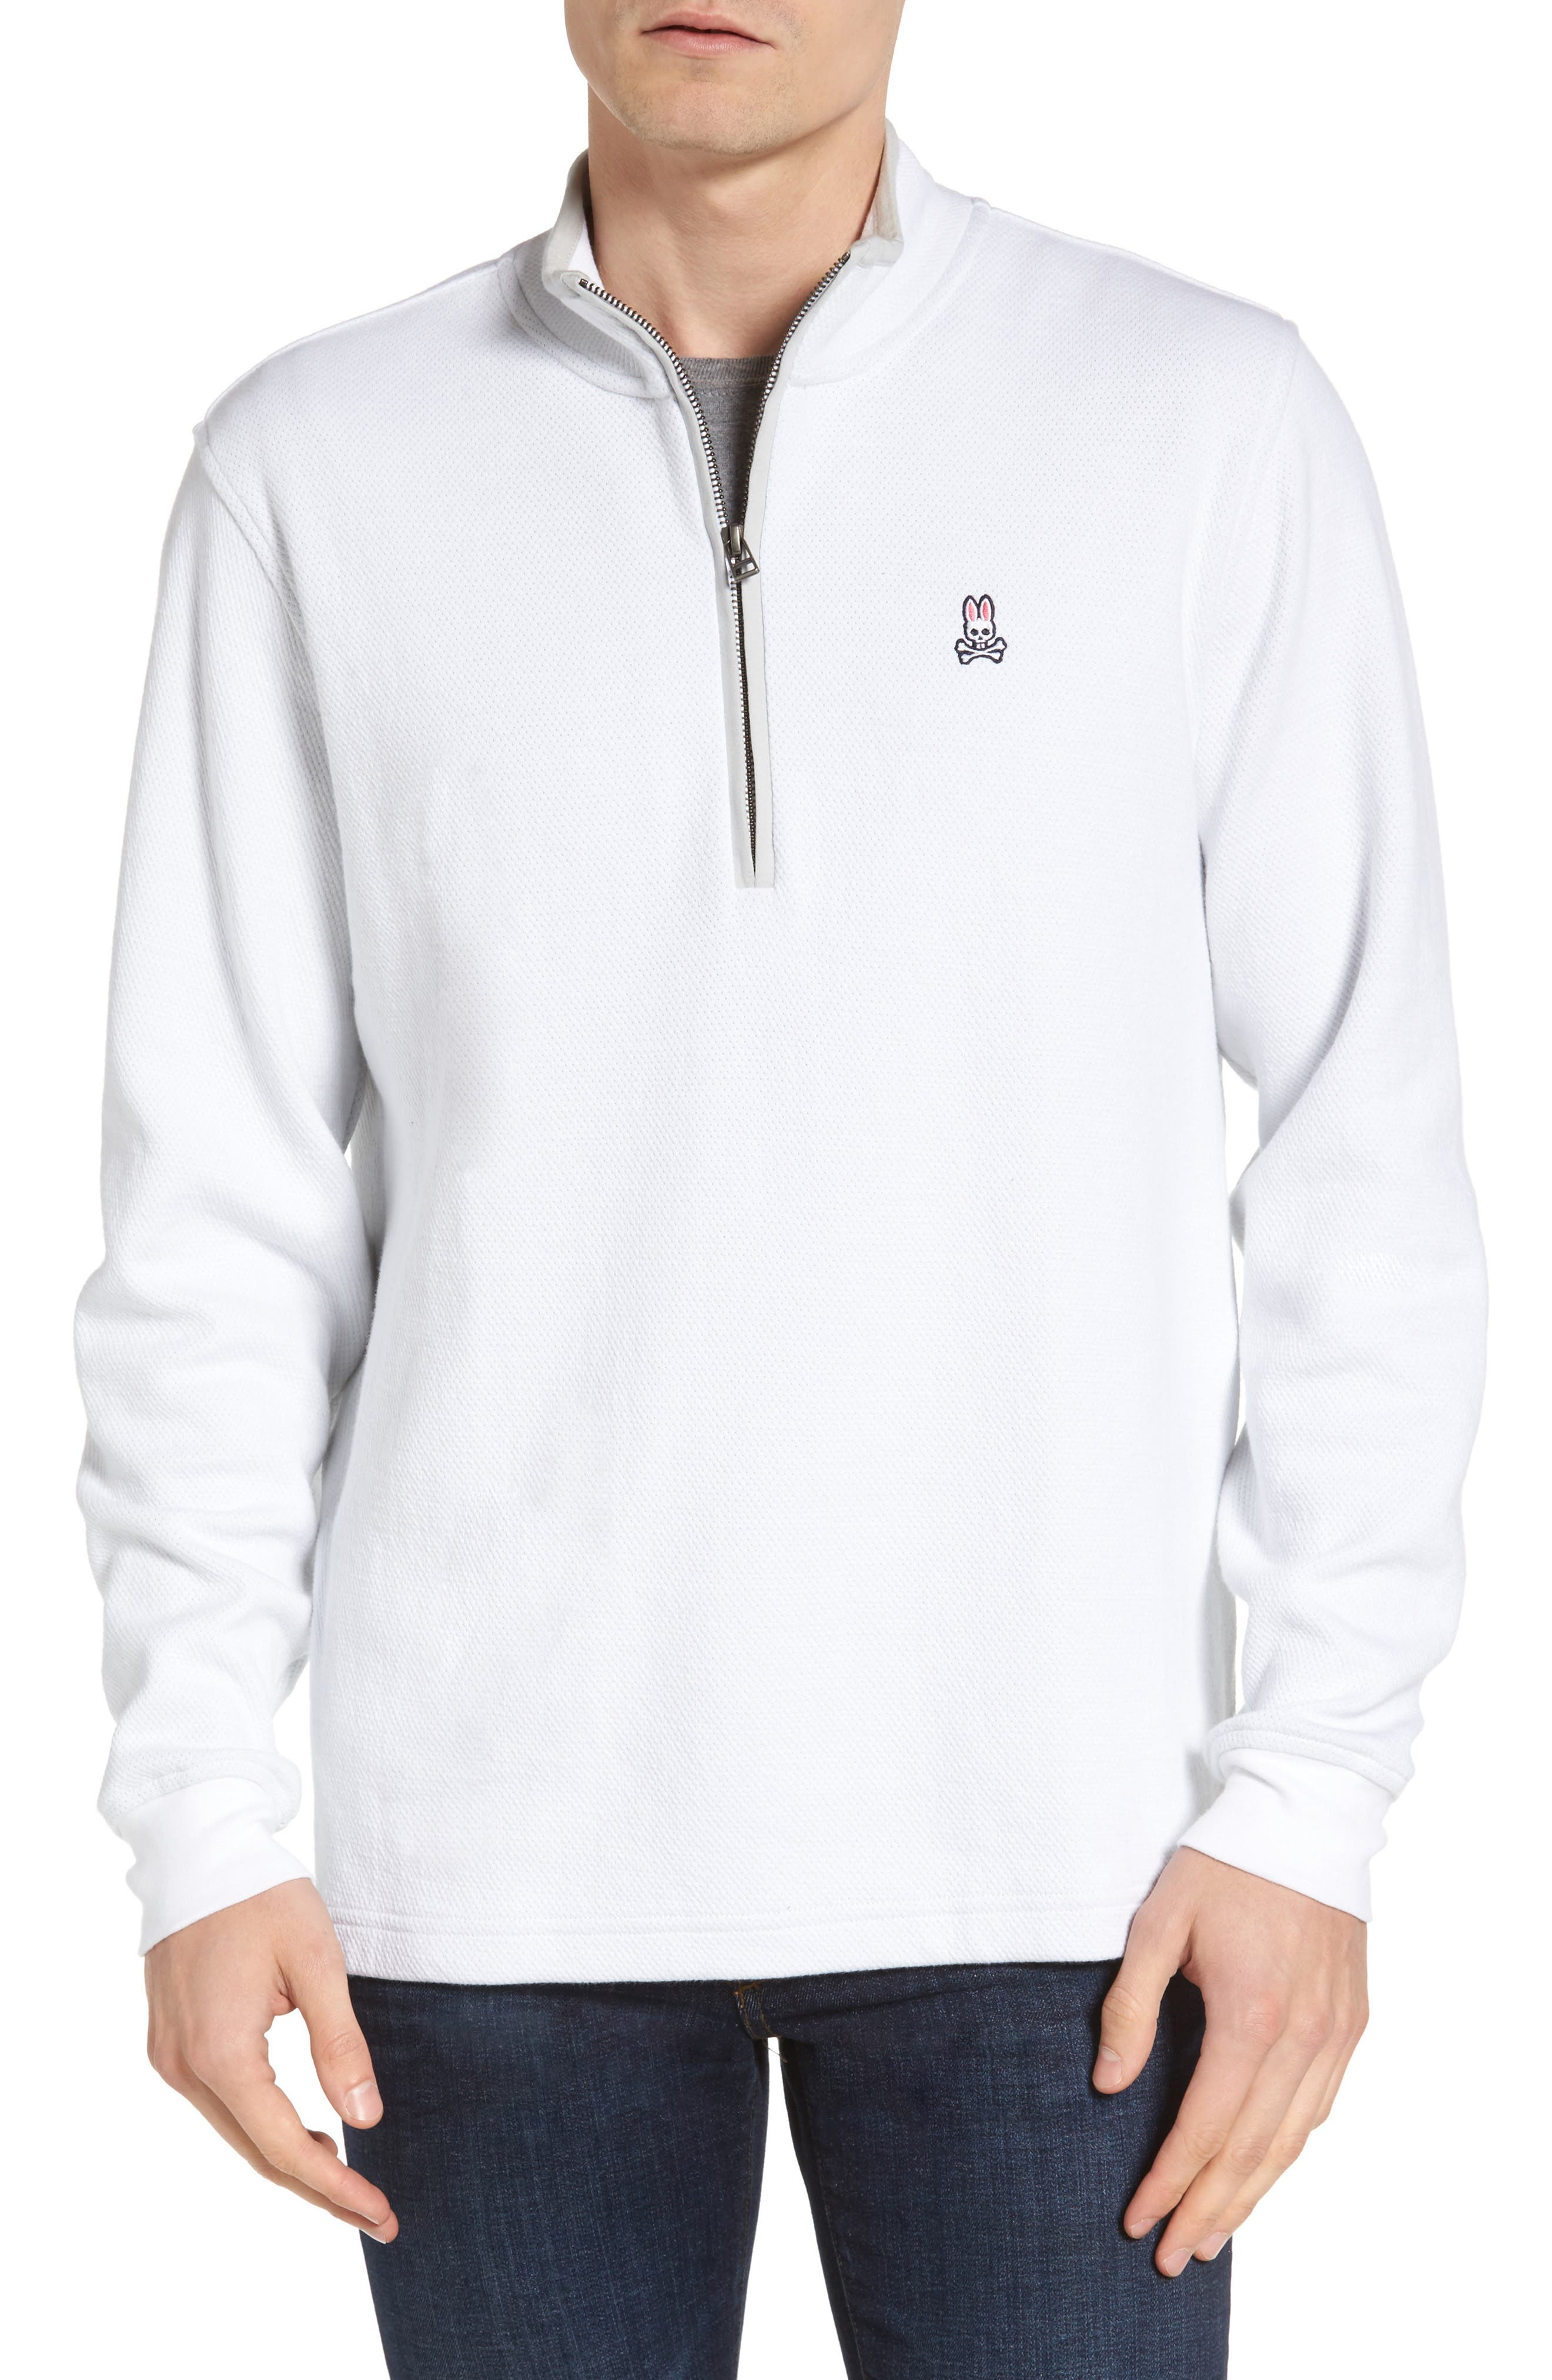 Golf Half Zip Pullover,                         Main,                         color, 100